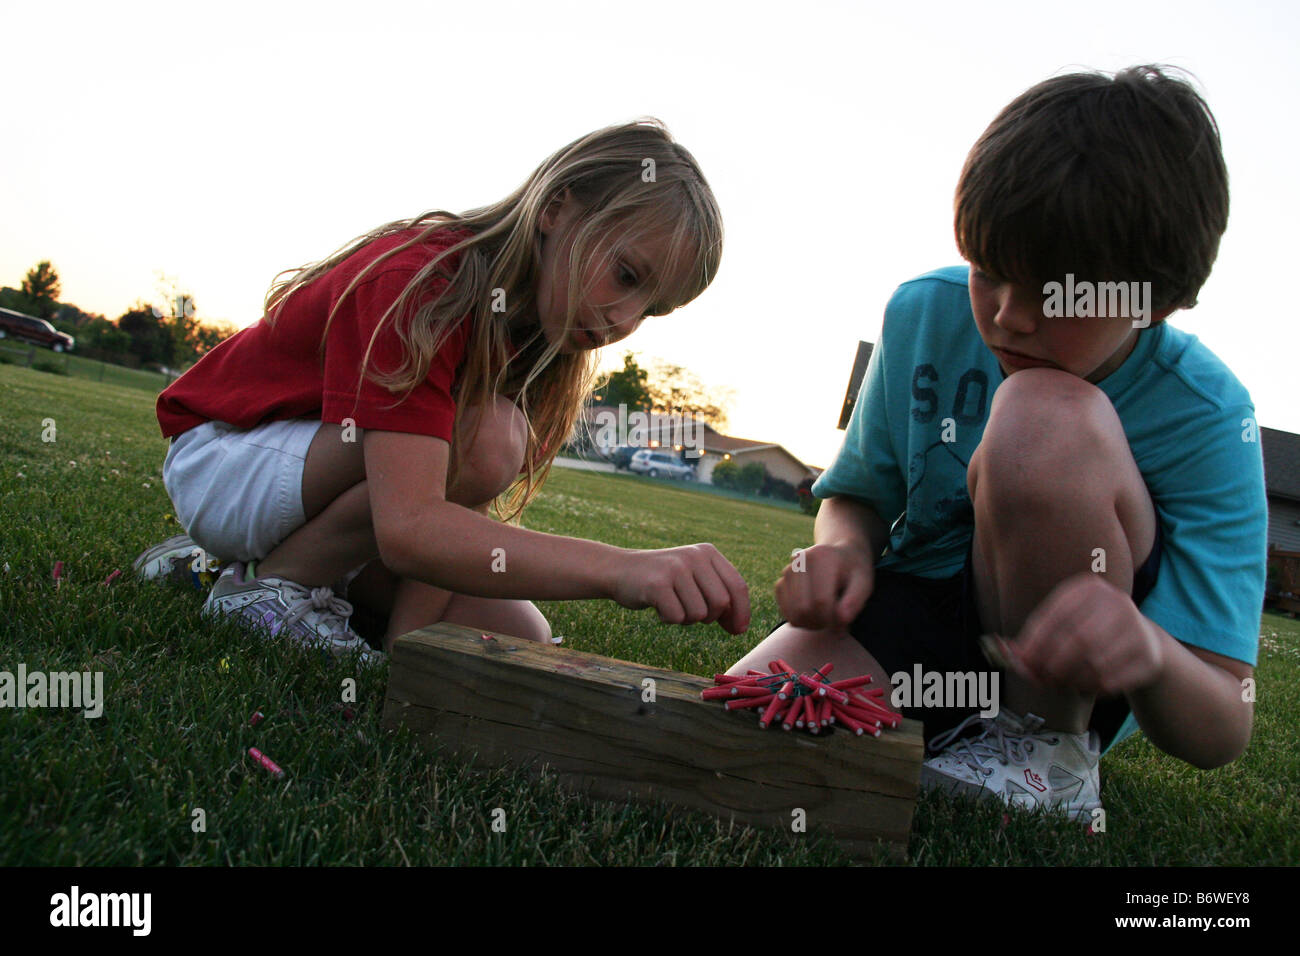 Young Children Playing With Firecrackers Stock Photo